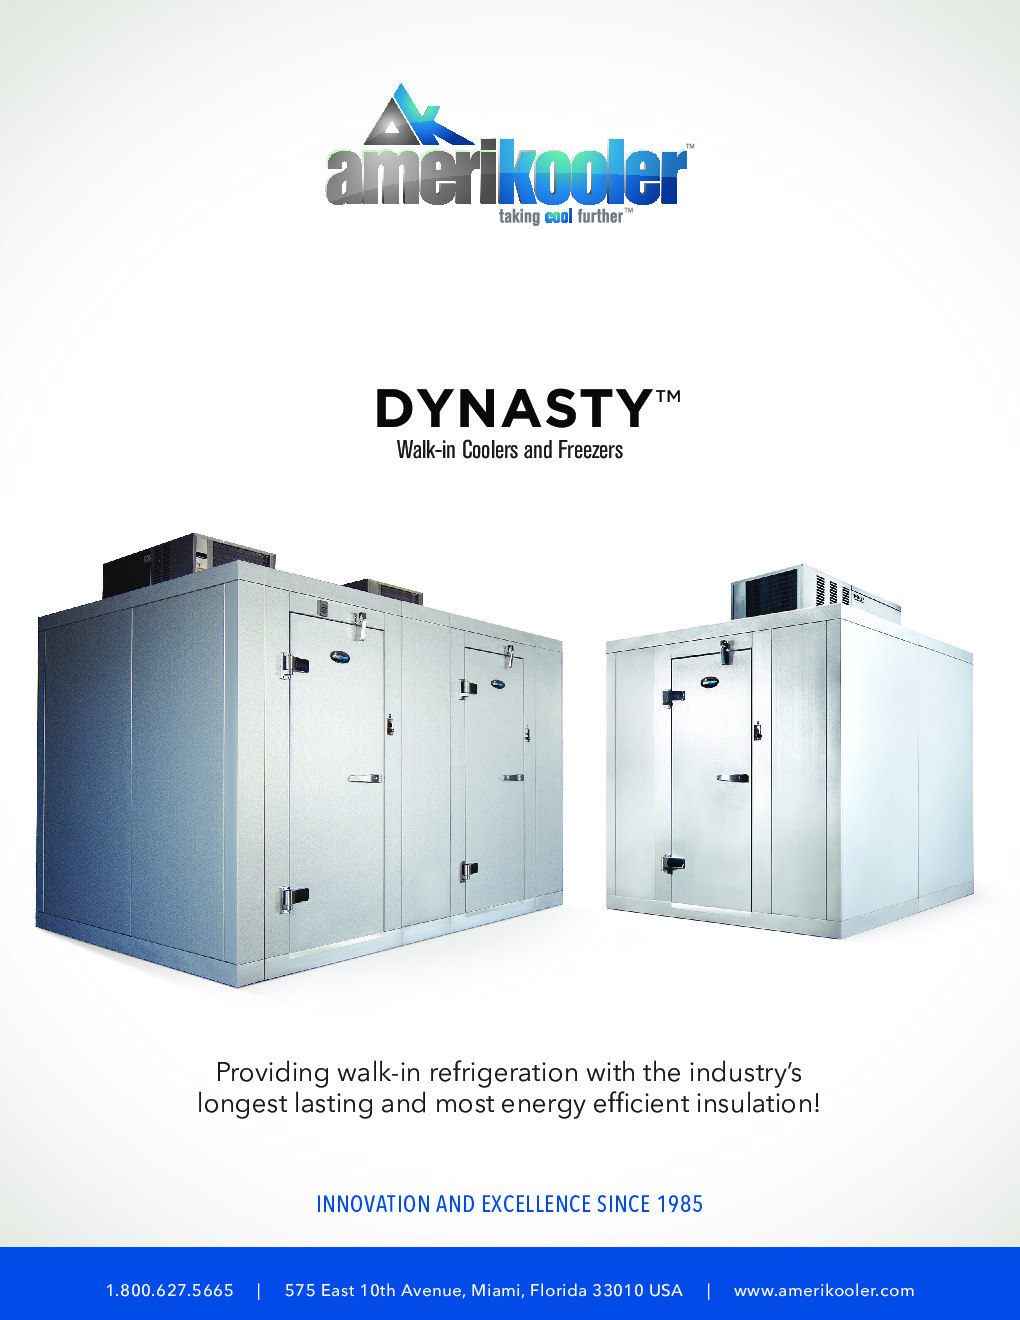 AmeriKooler DW091877N-6/12-RM 9' X 18' Walk-In Cooler, 12' L Cooler without Floor and 6' L Freezer, Remote